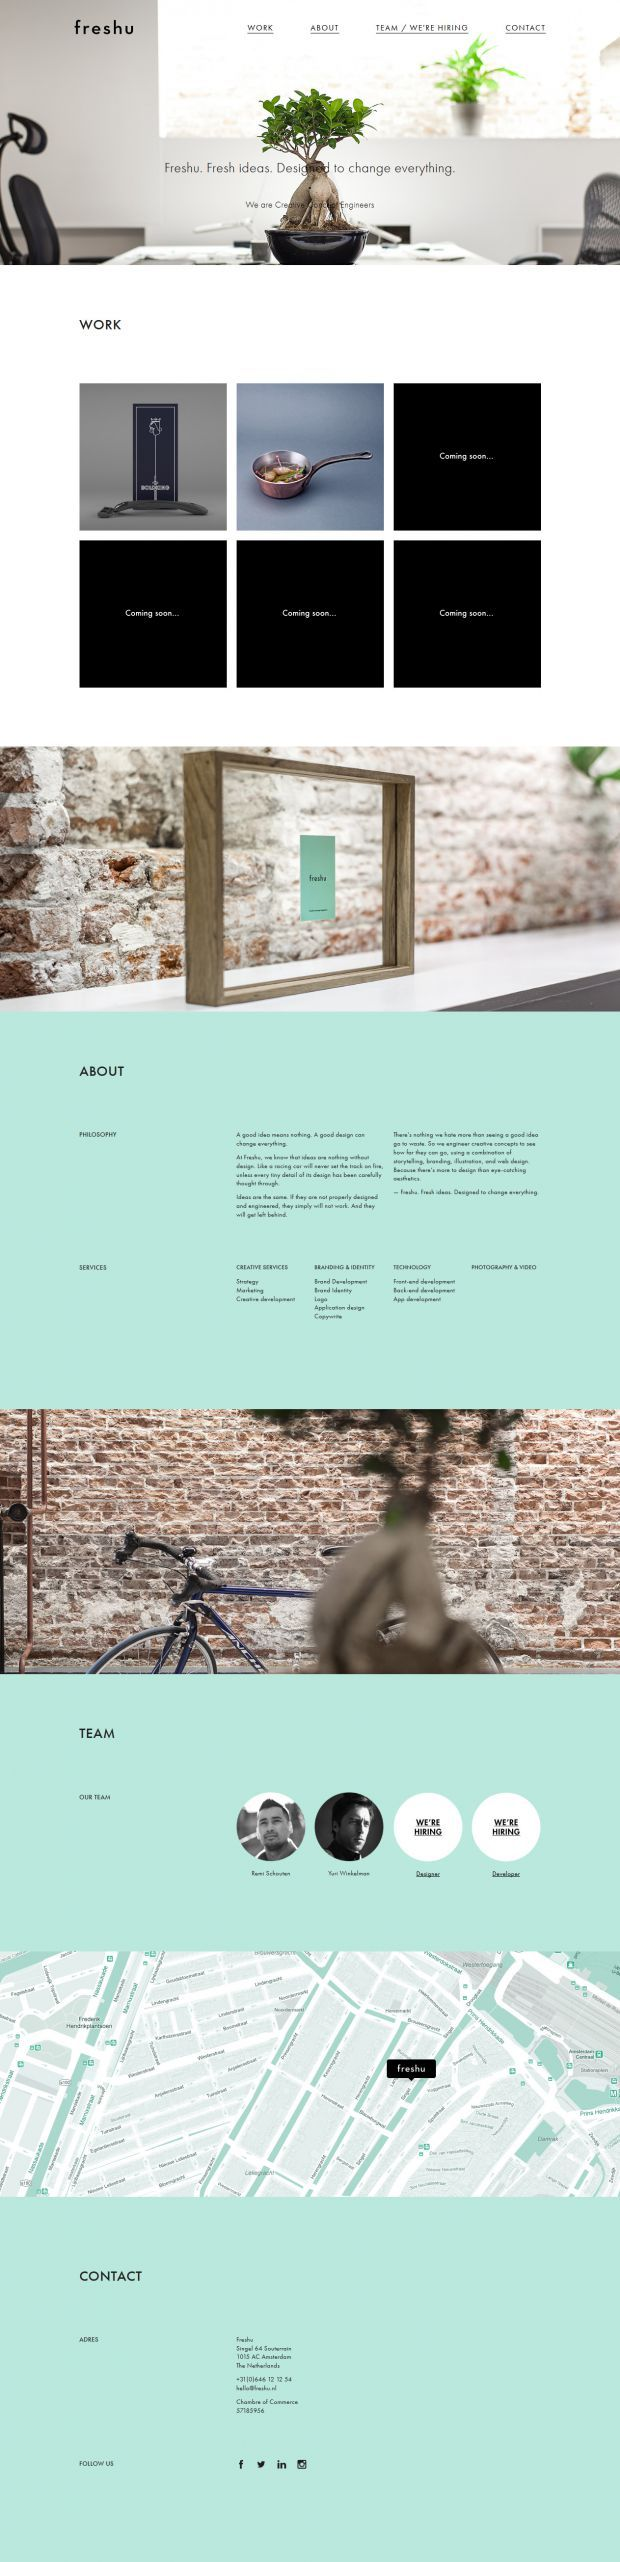 Full Service Creative Agency in Amsterdam - Freshu #webdesign #it #design #layout #userinterface #ui #ux